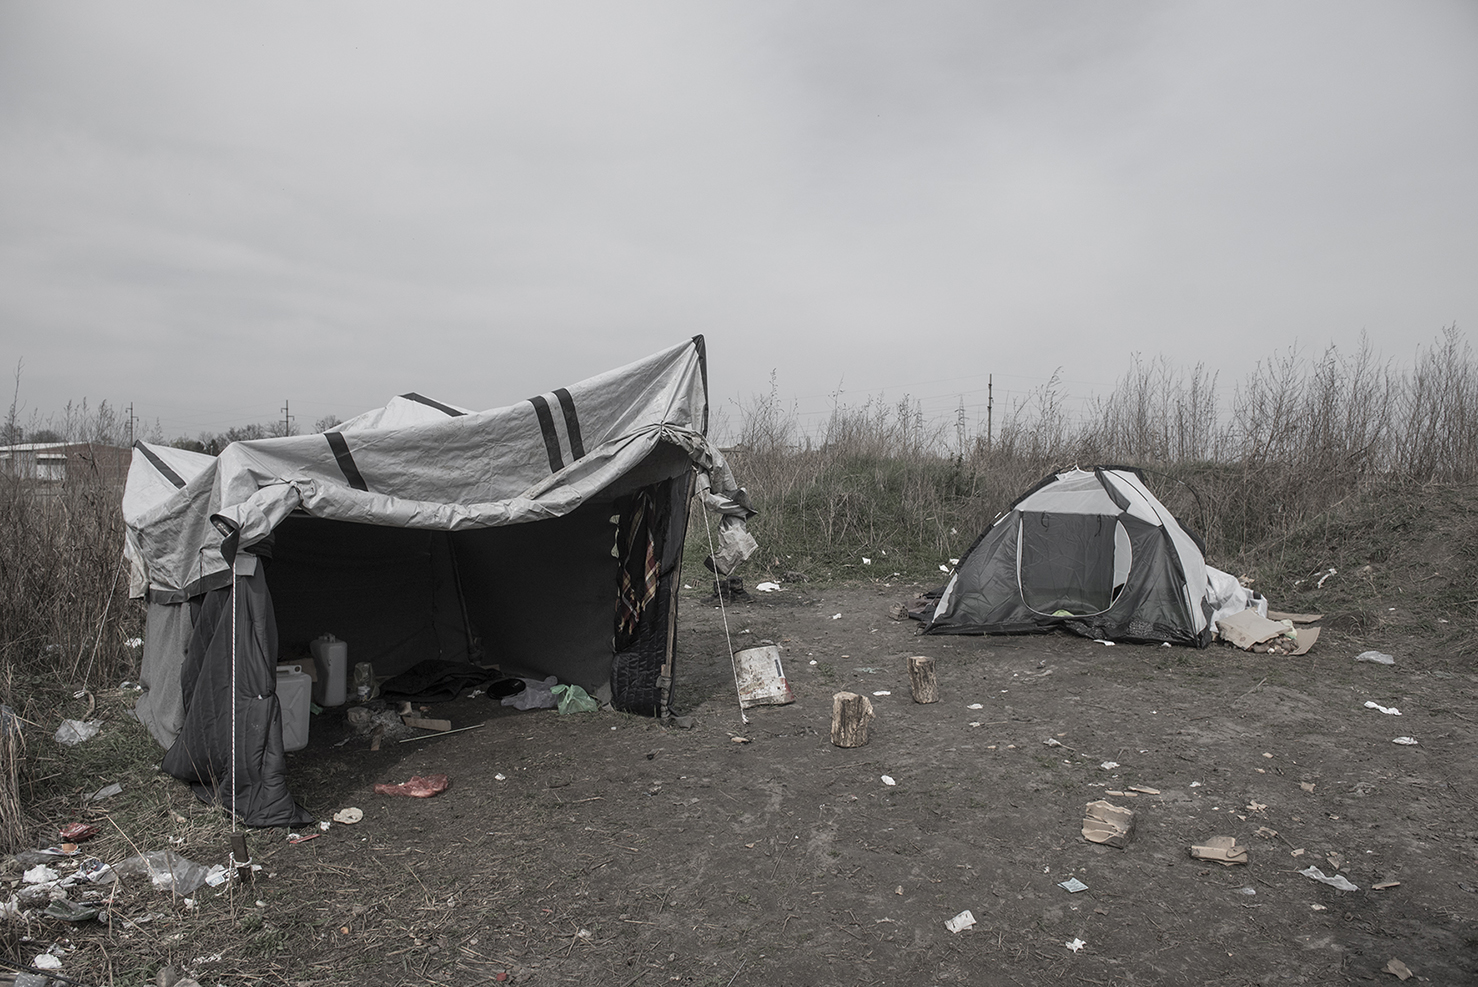 """From the photographic series """"Refugees: Images of the Unseen"""" by Portuguese artist Omar Marques"""